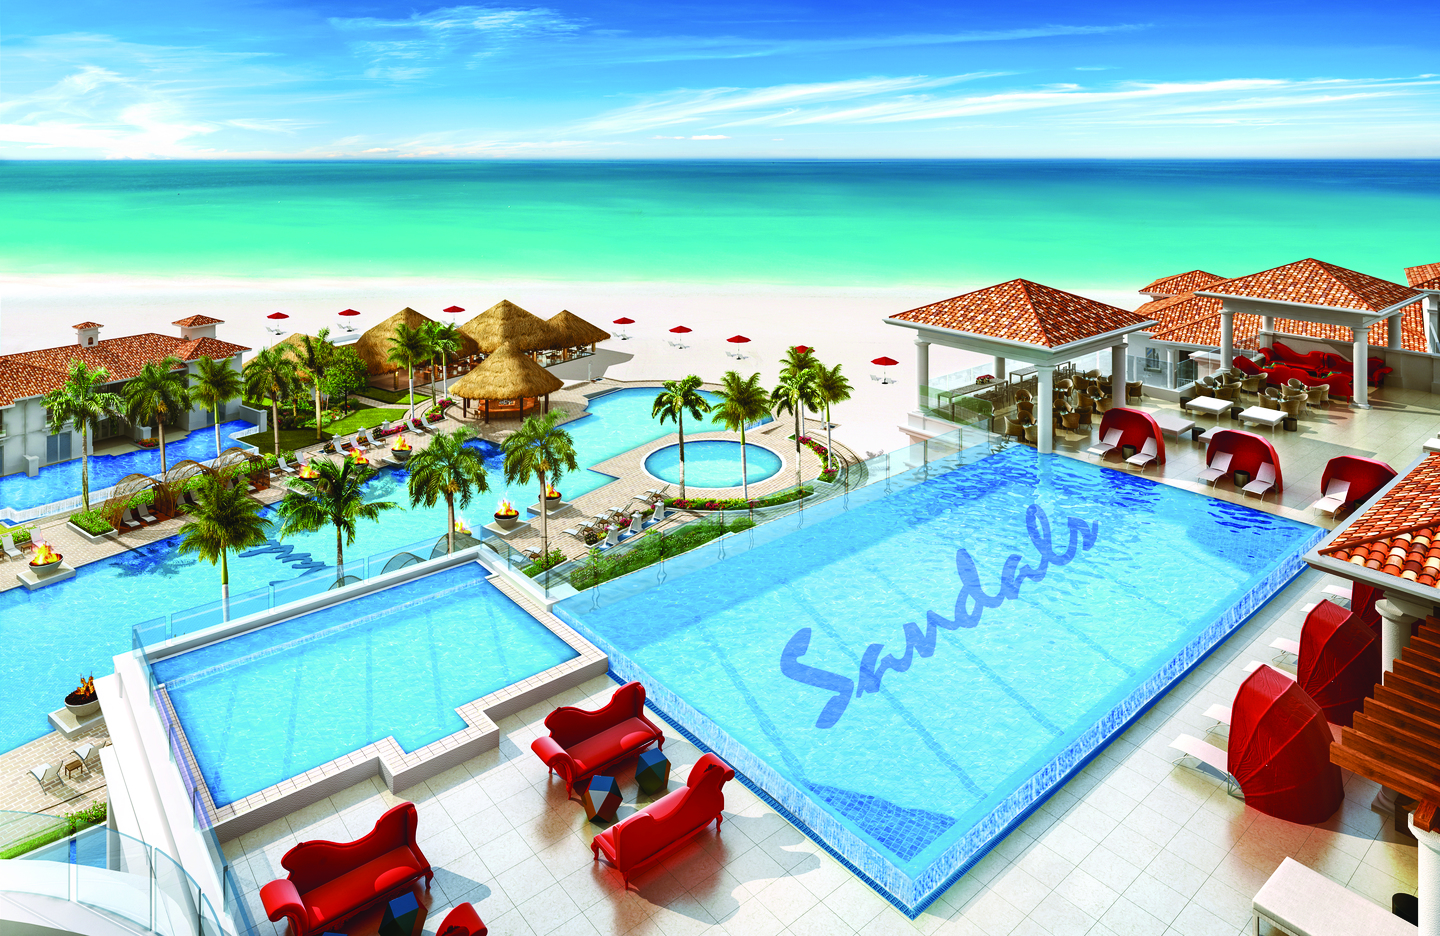 Sandals Royal Barbados Saint Lawrence Gap Barbados